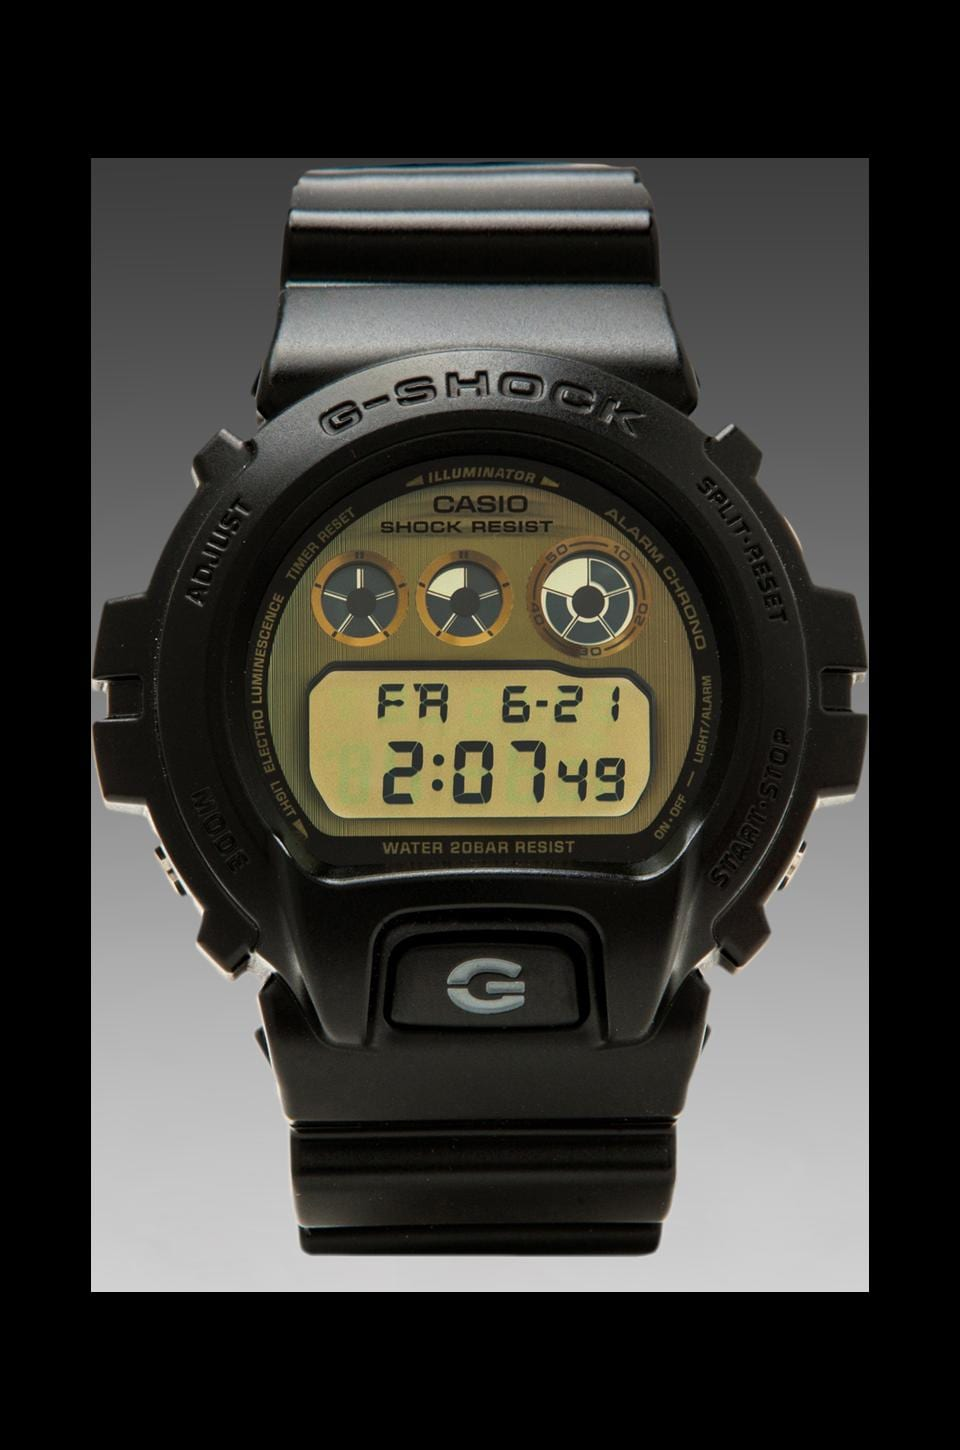 G-Shock DW-6900 in Black